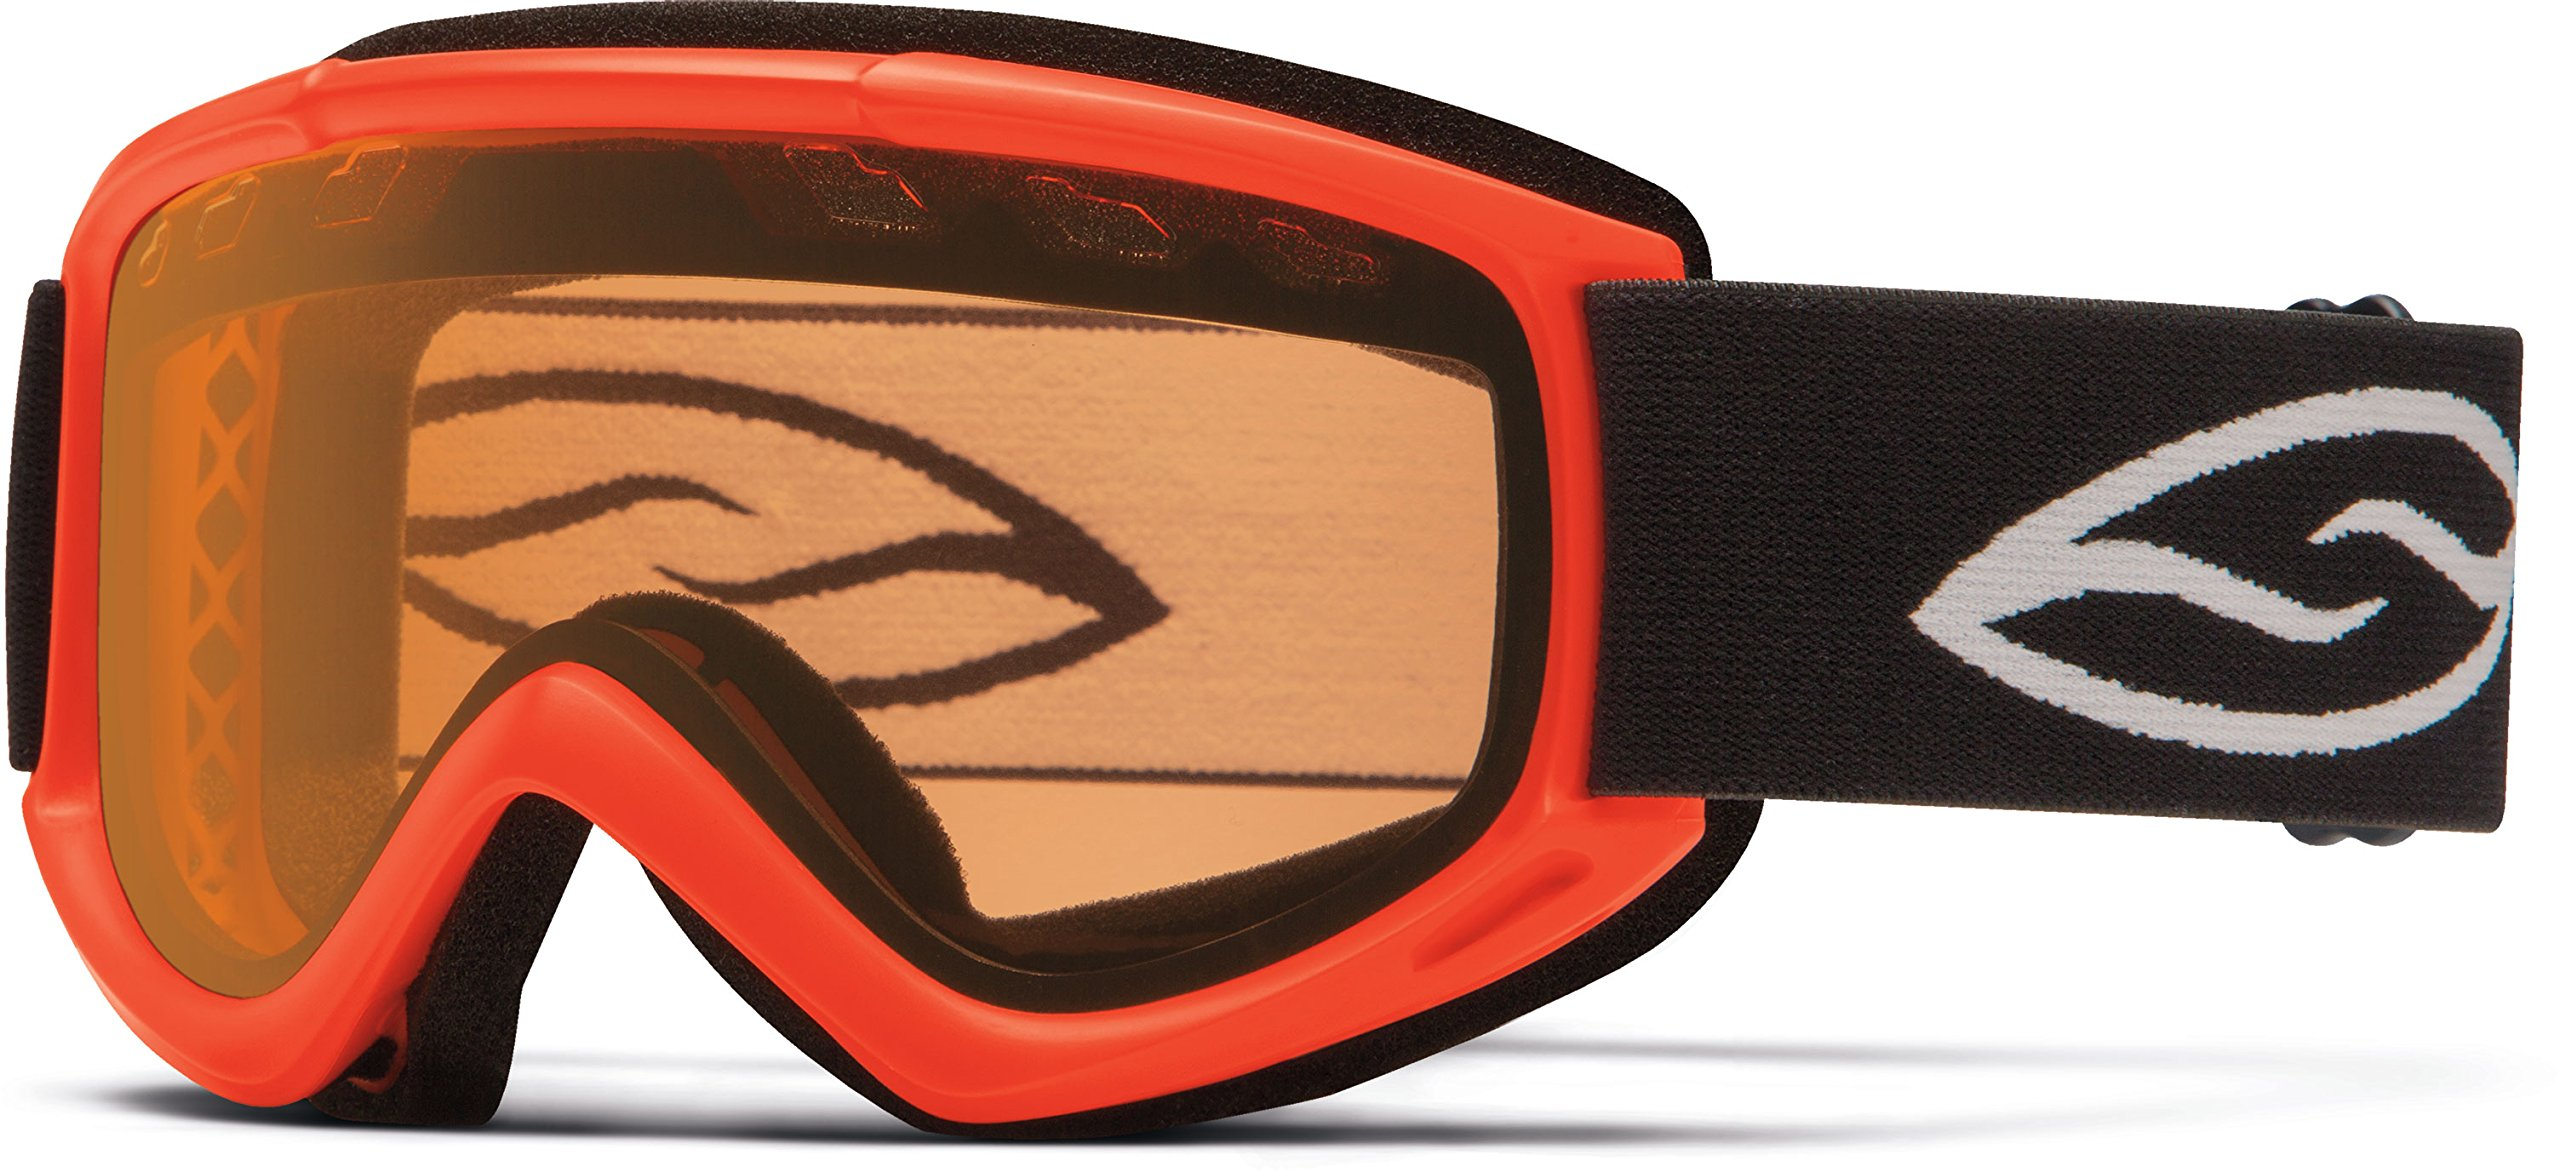 Smith Optics Cascade Airflow Series Snocross Snowmobile Goggles Eyewear - Neon Orange/Gold Lite / One Size Fits All by Smith Optics